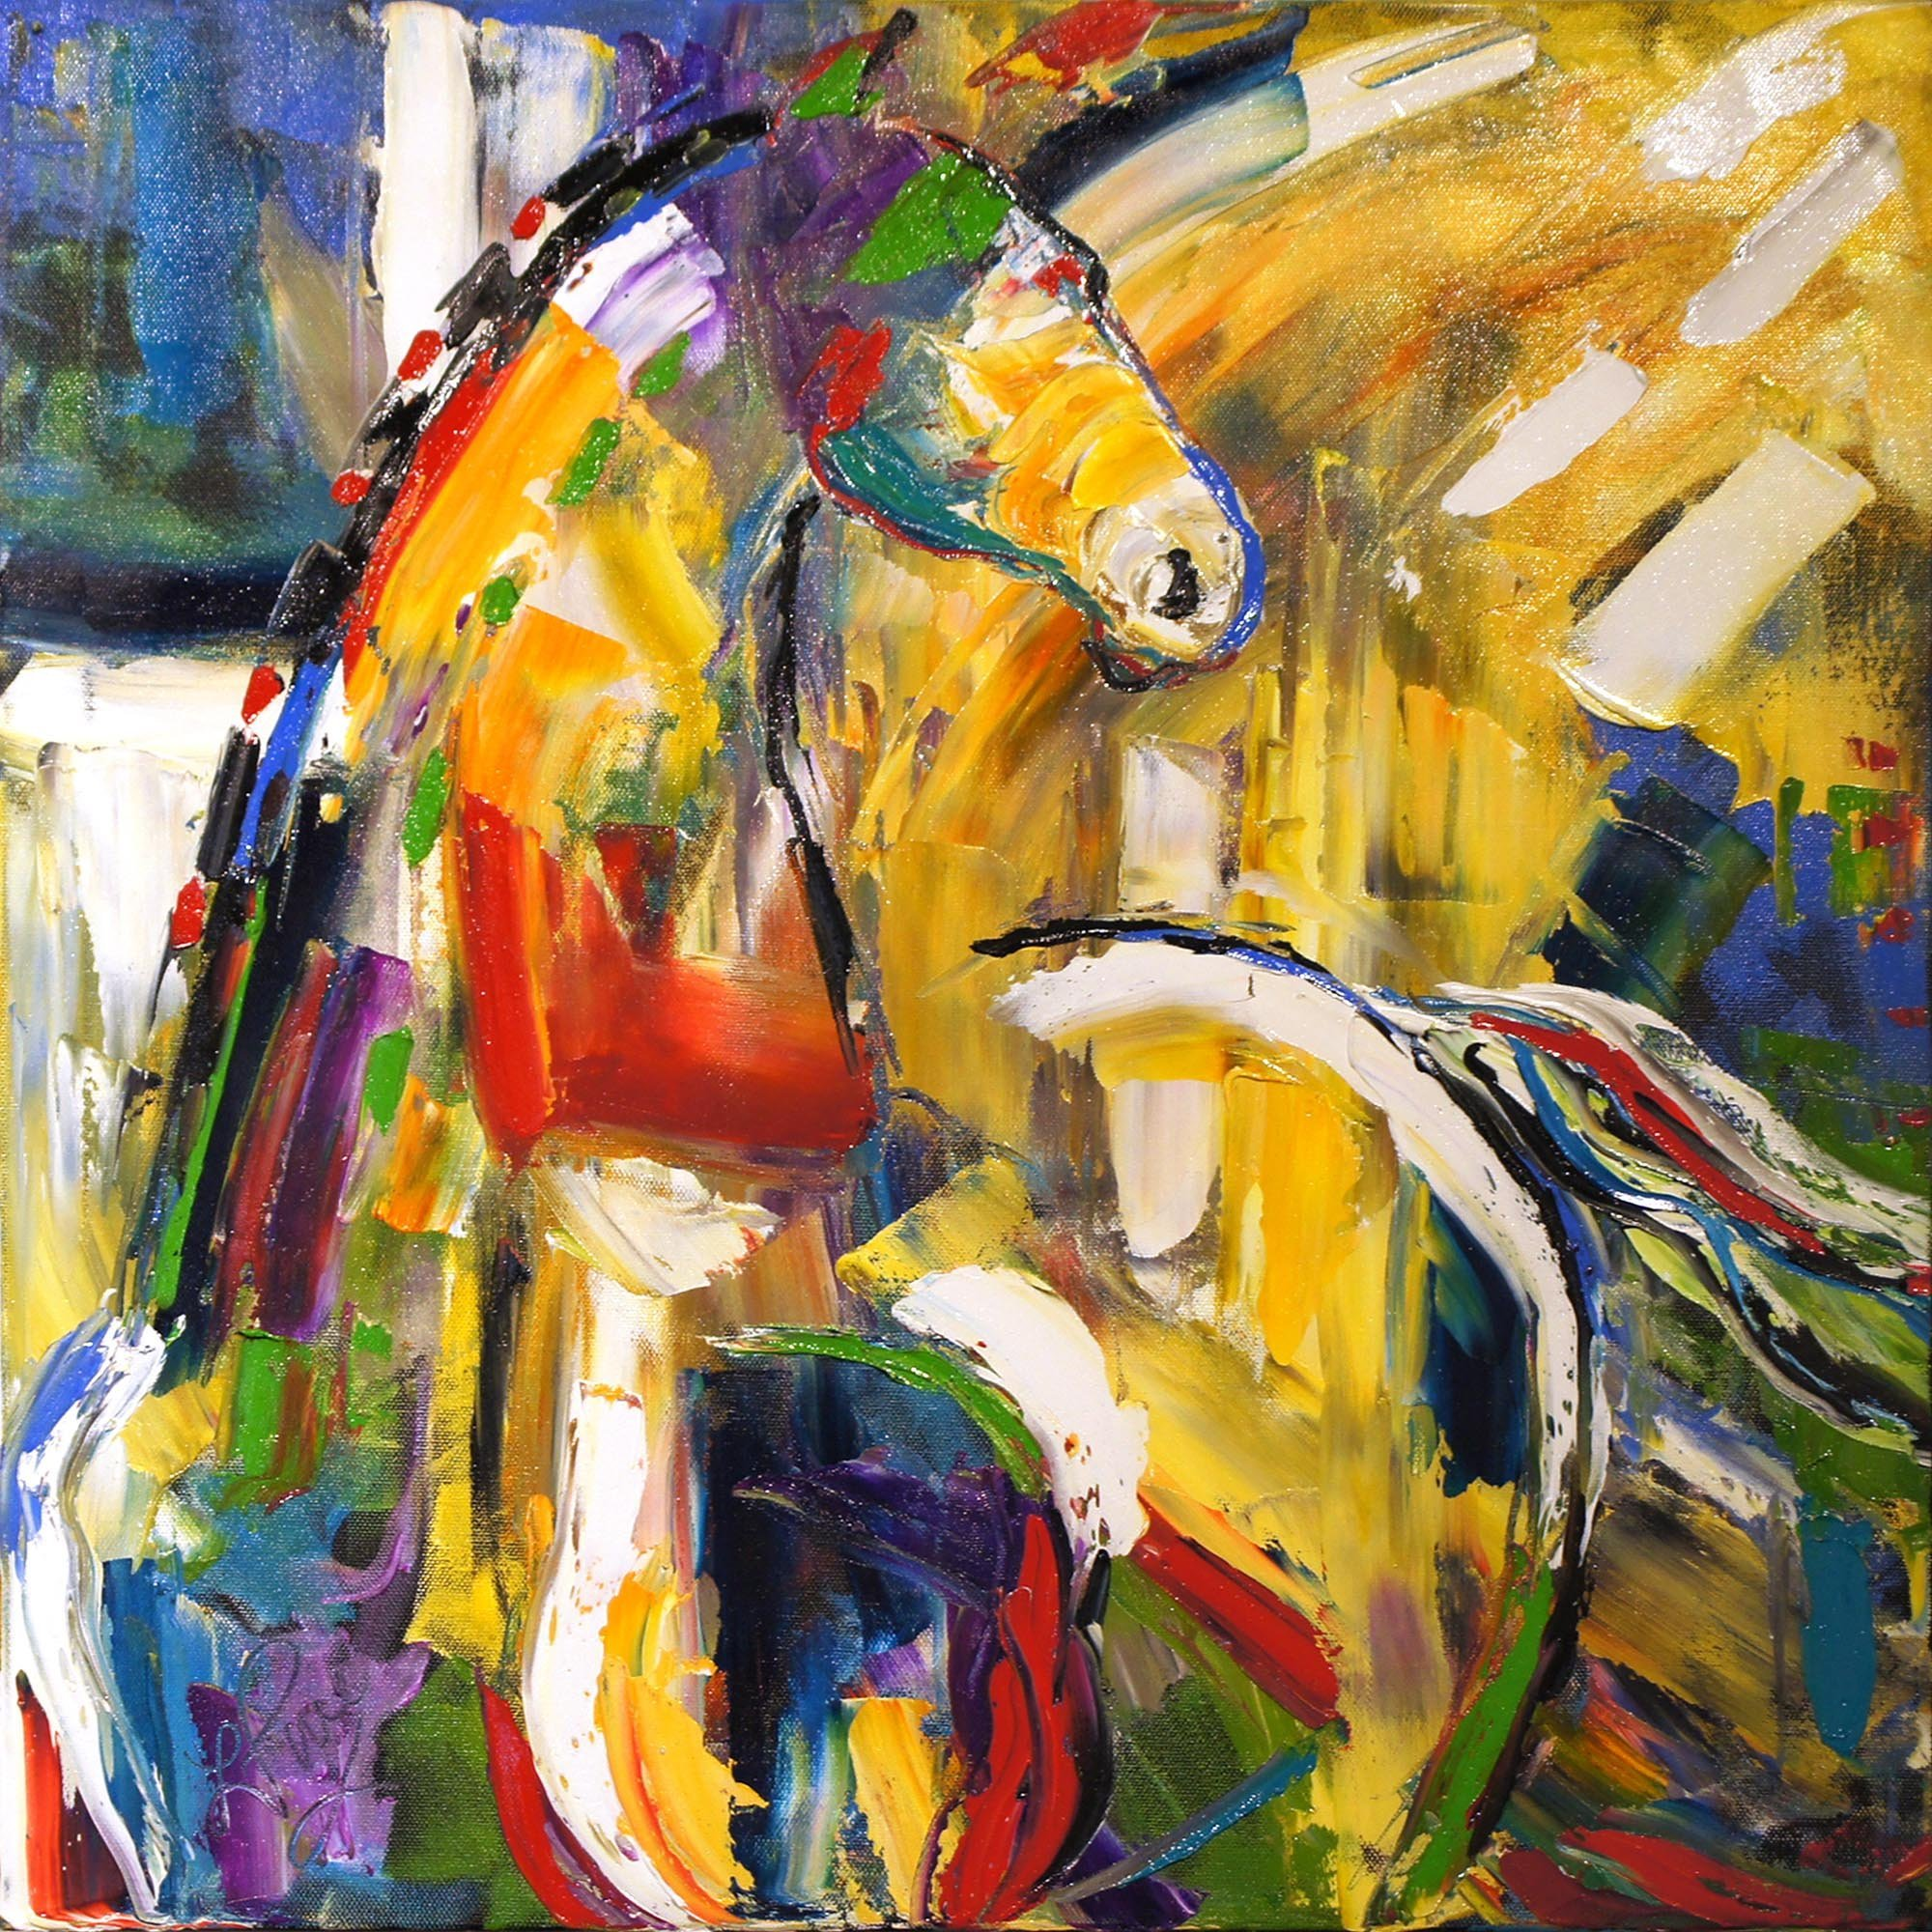 Sunbeam Love - Original Horse Painting Colorful Equine Art Modern Western Art Contemporary Horses Decor by Renowned Artist Laurie Pace